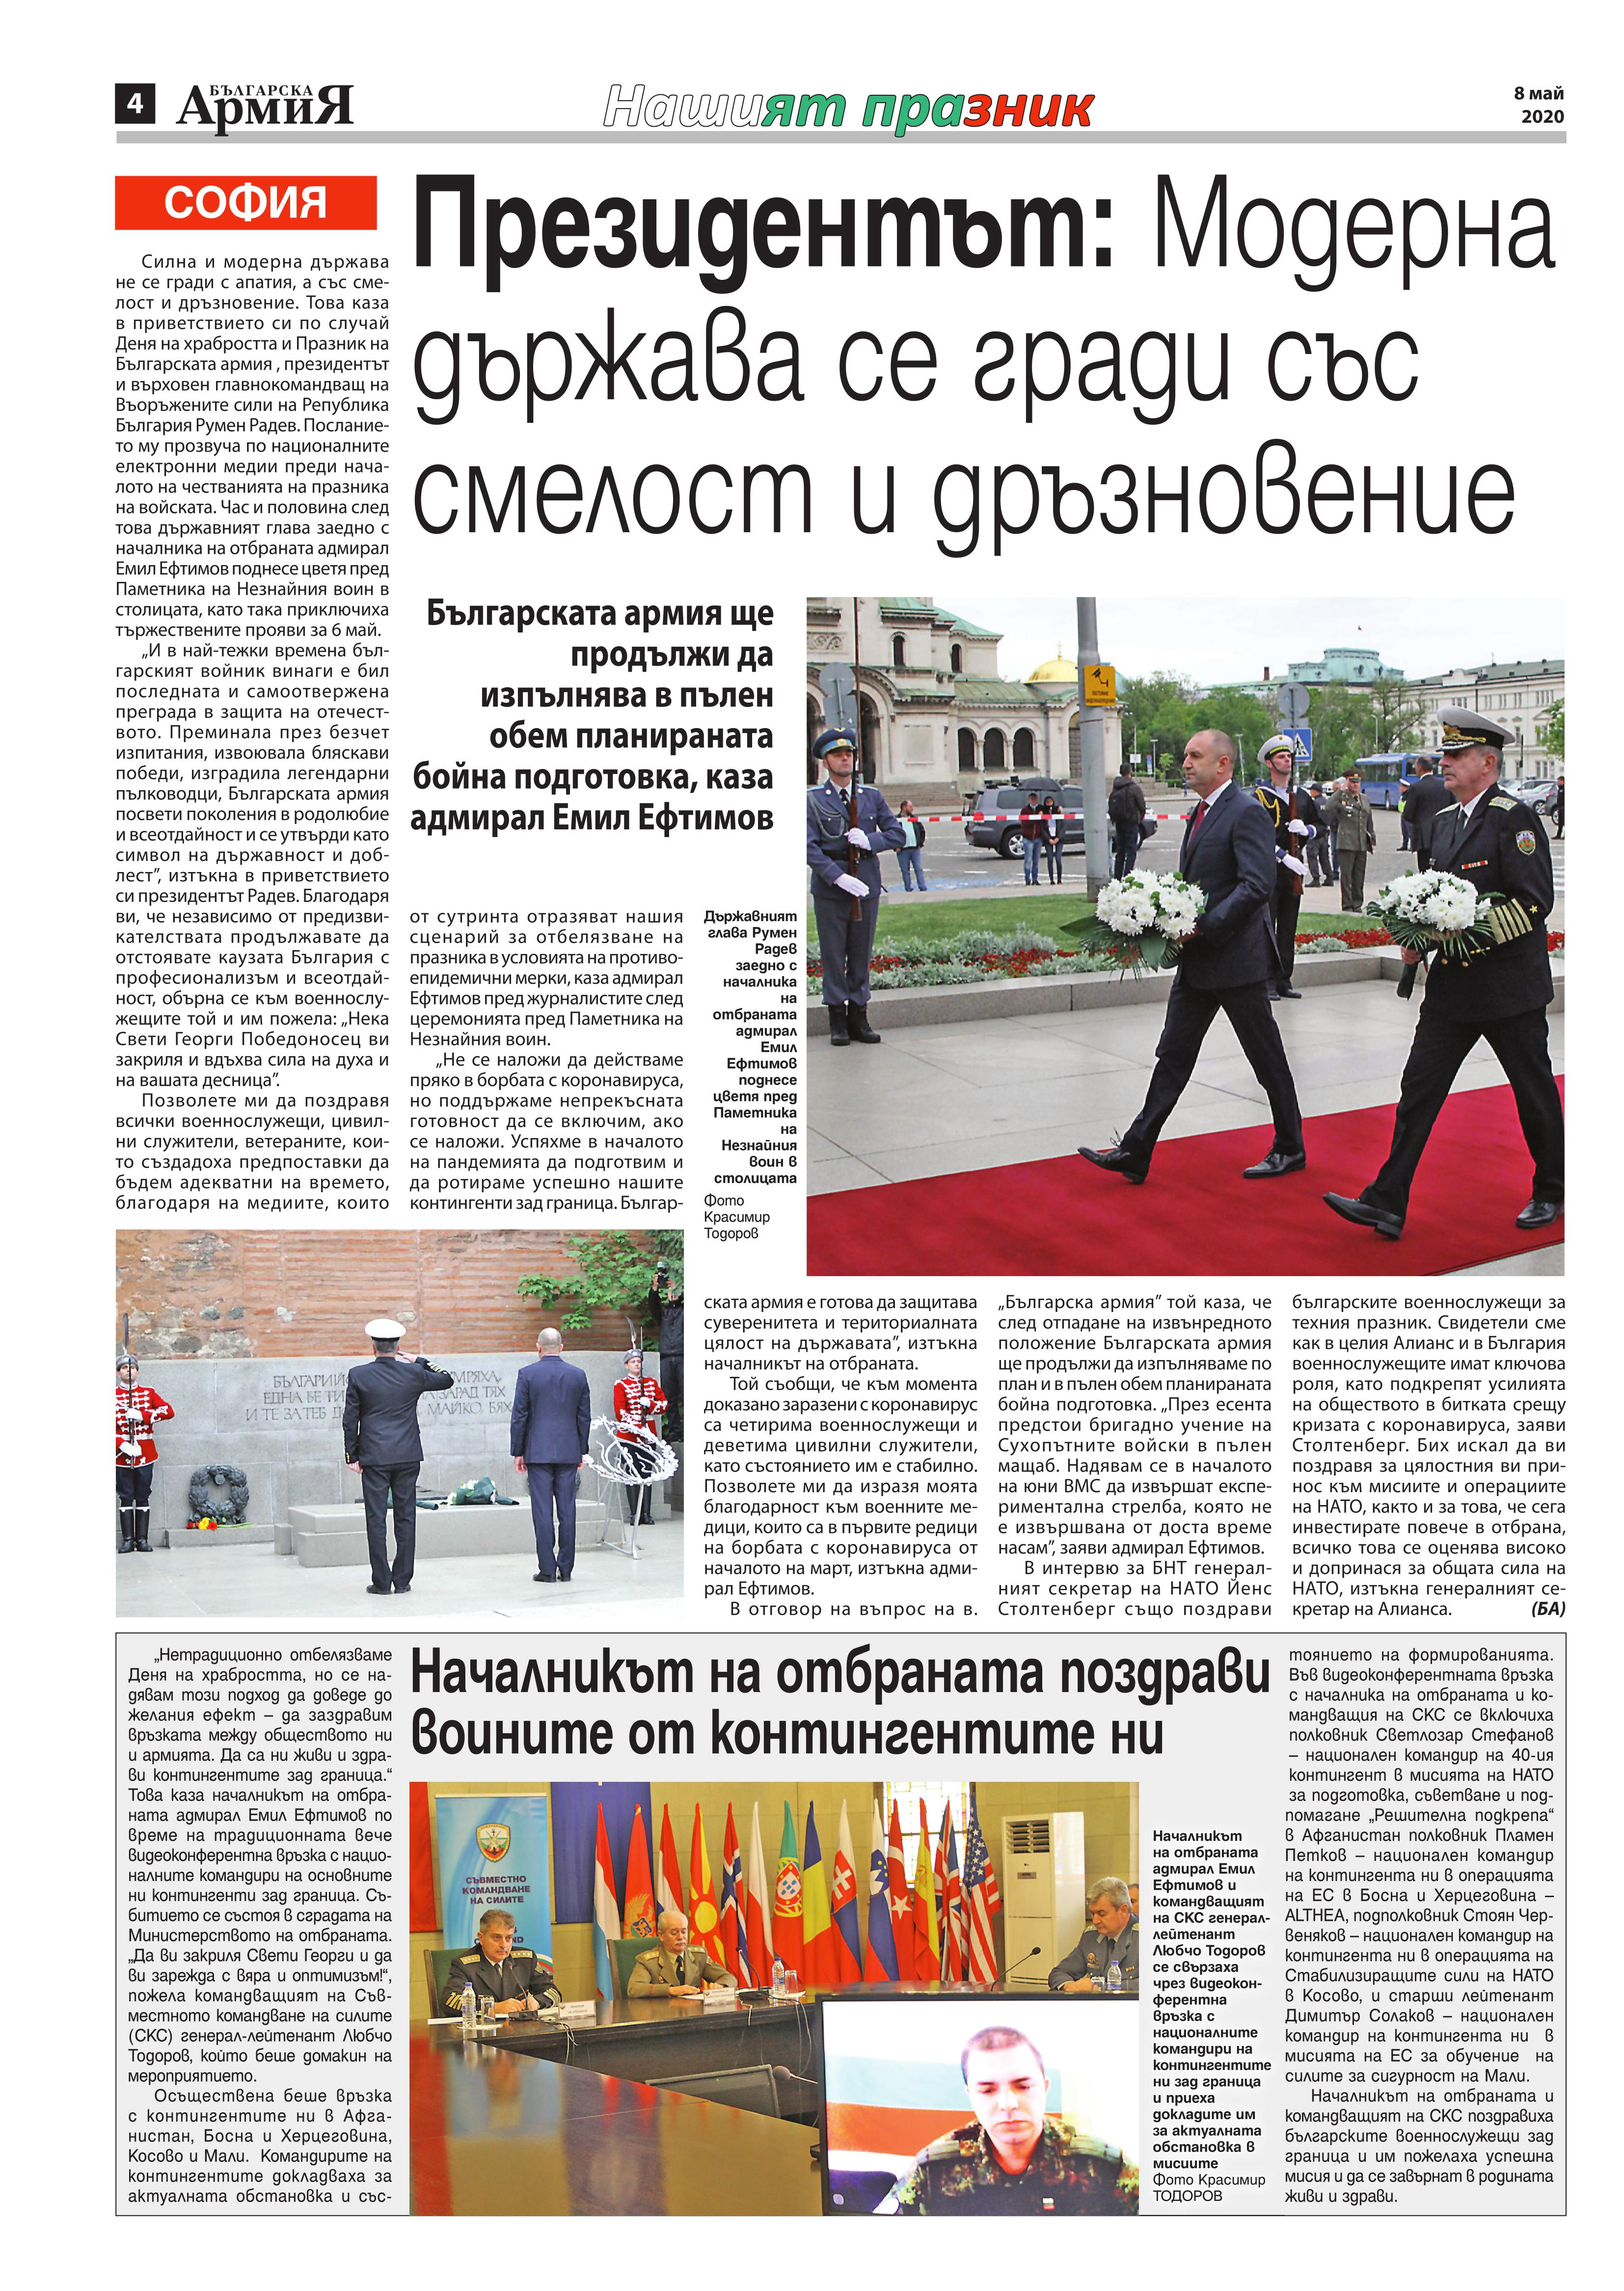 https://armymedia.bg/wp-content/uploads/2015/06/04.page1_-134.jpg